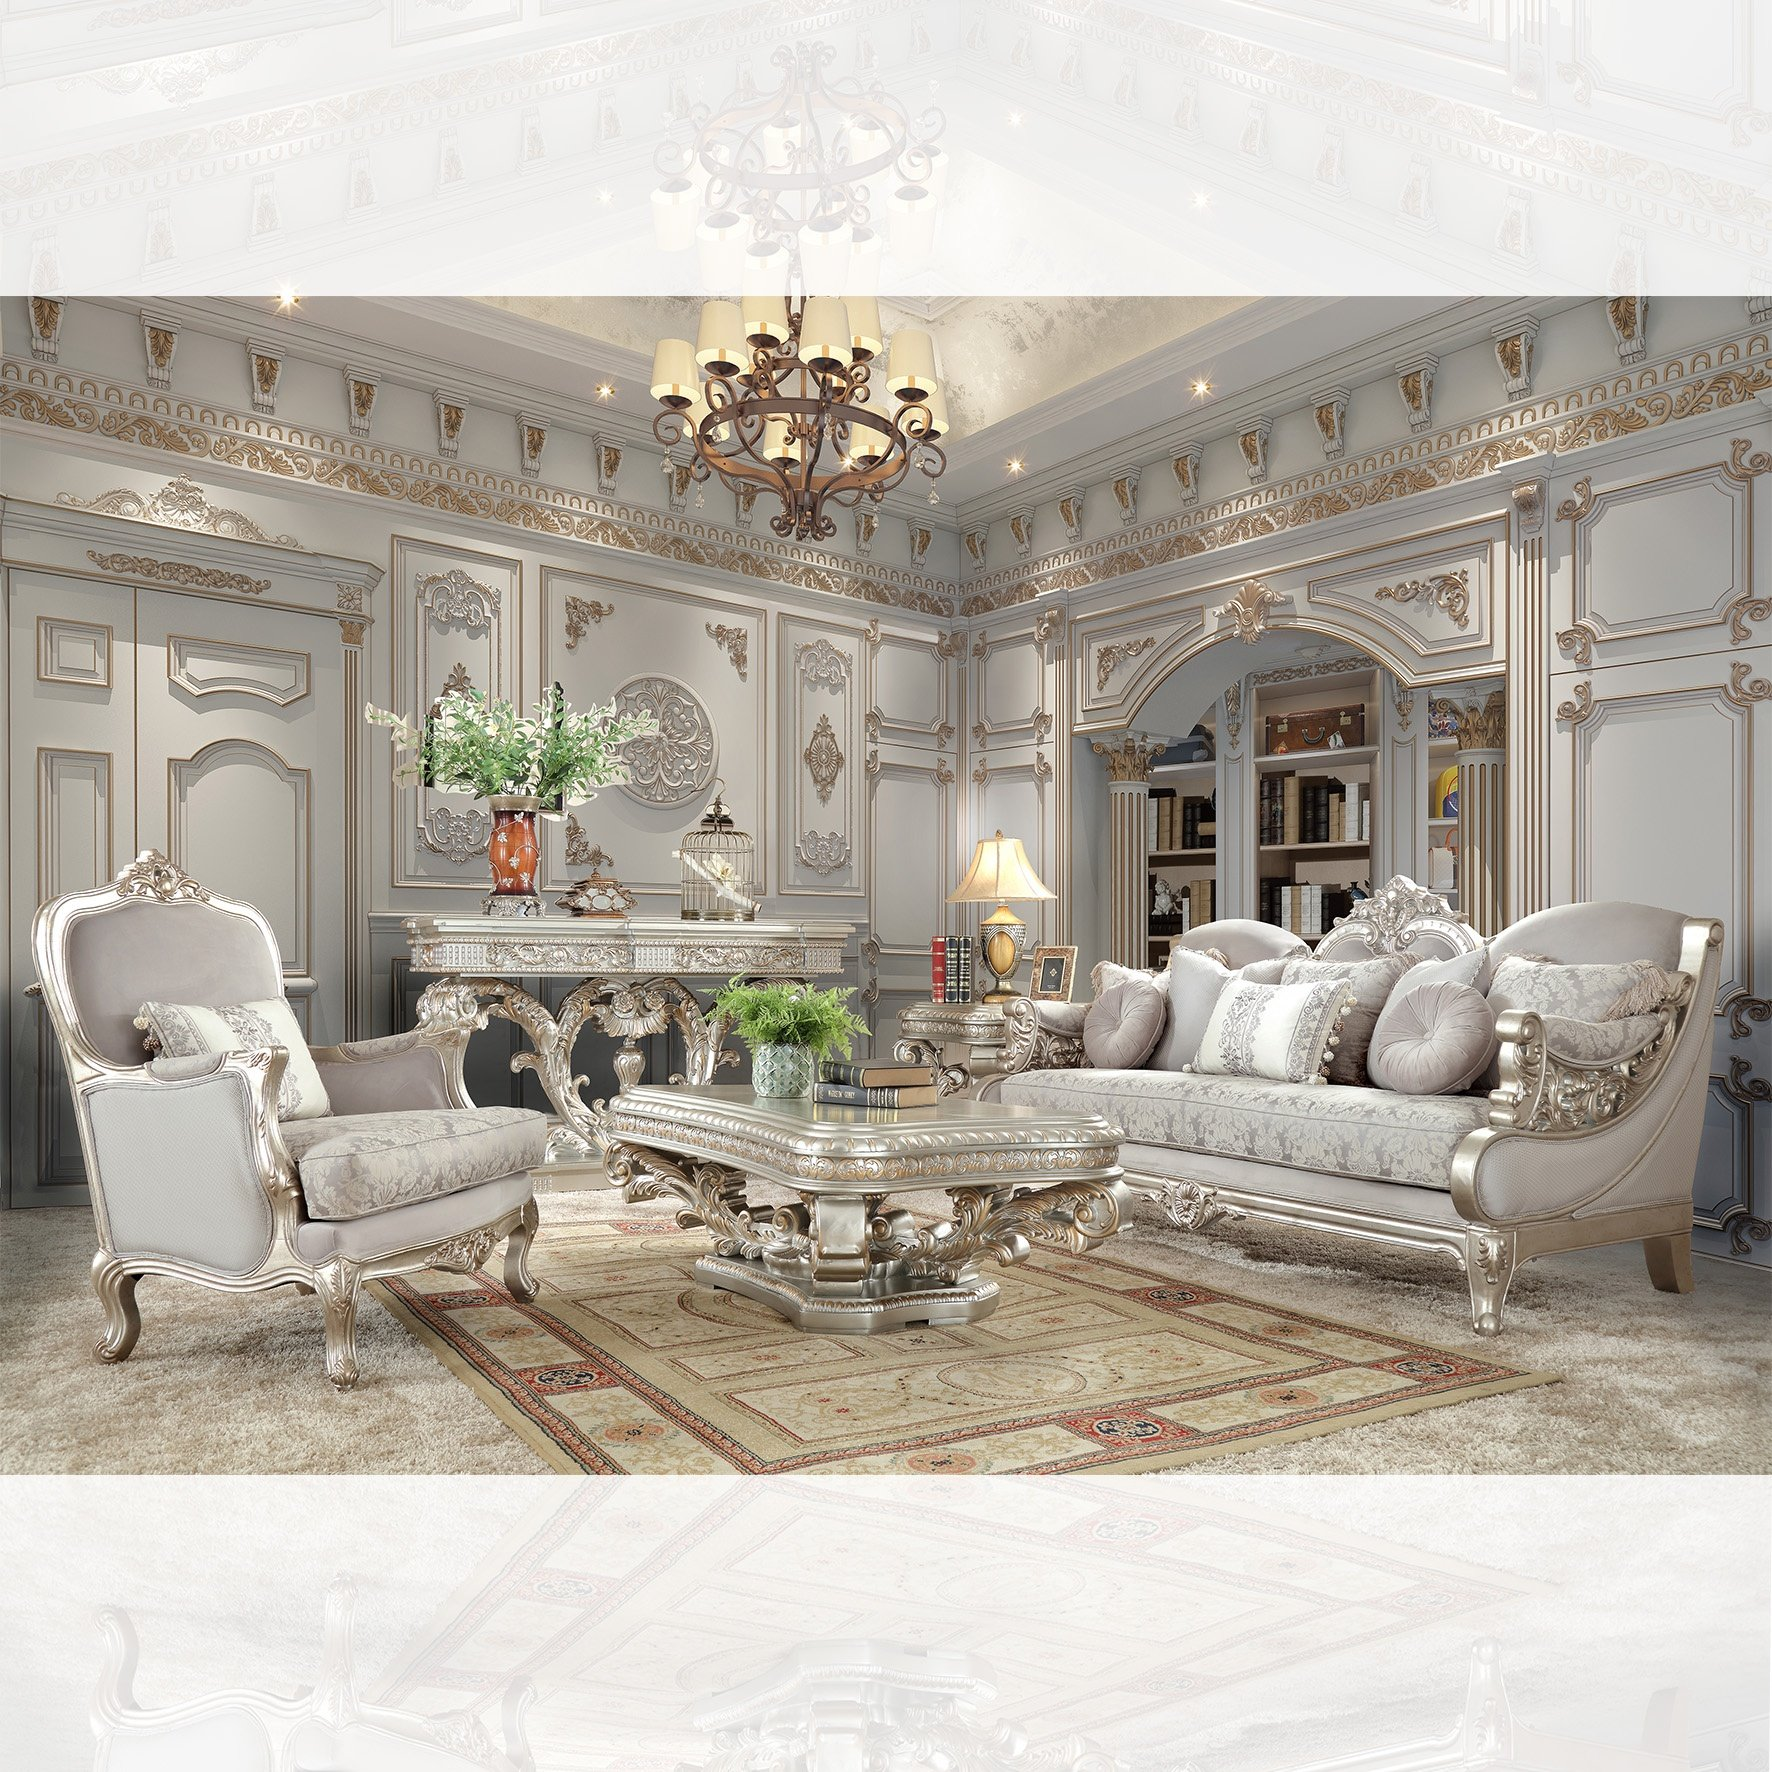 Traditional Living Room Set 3 PCS in Gray Fabric Traditional Style Homey Design HD-2662